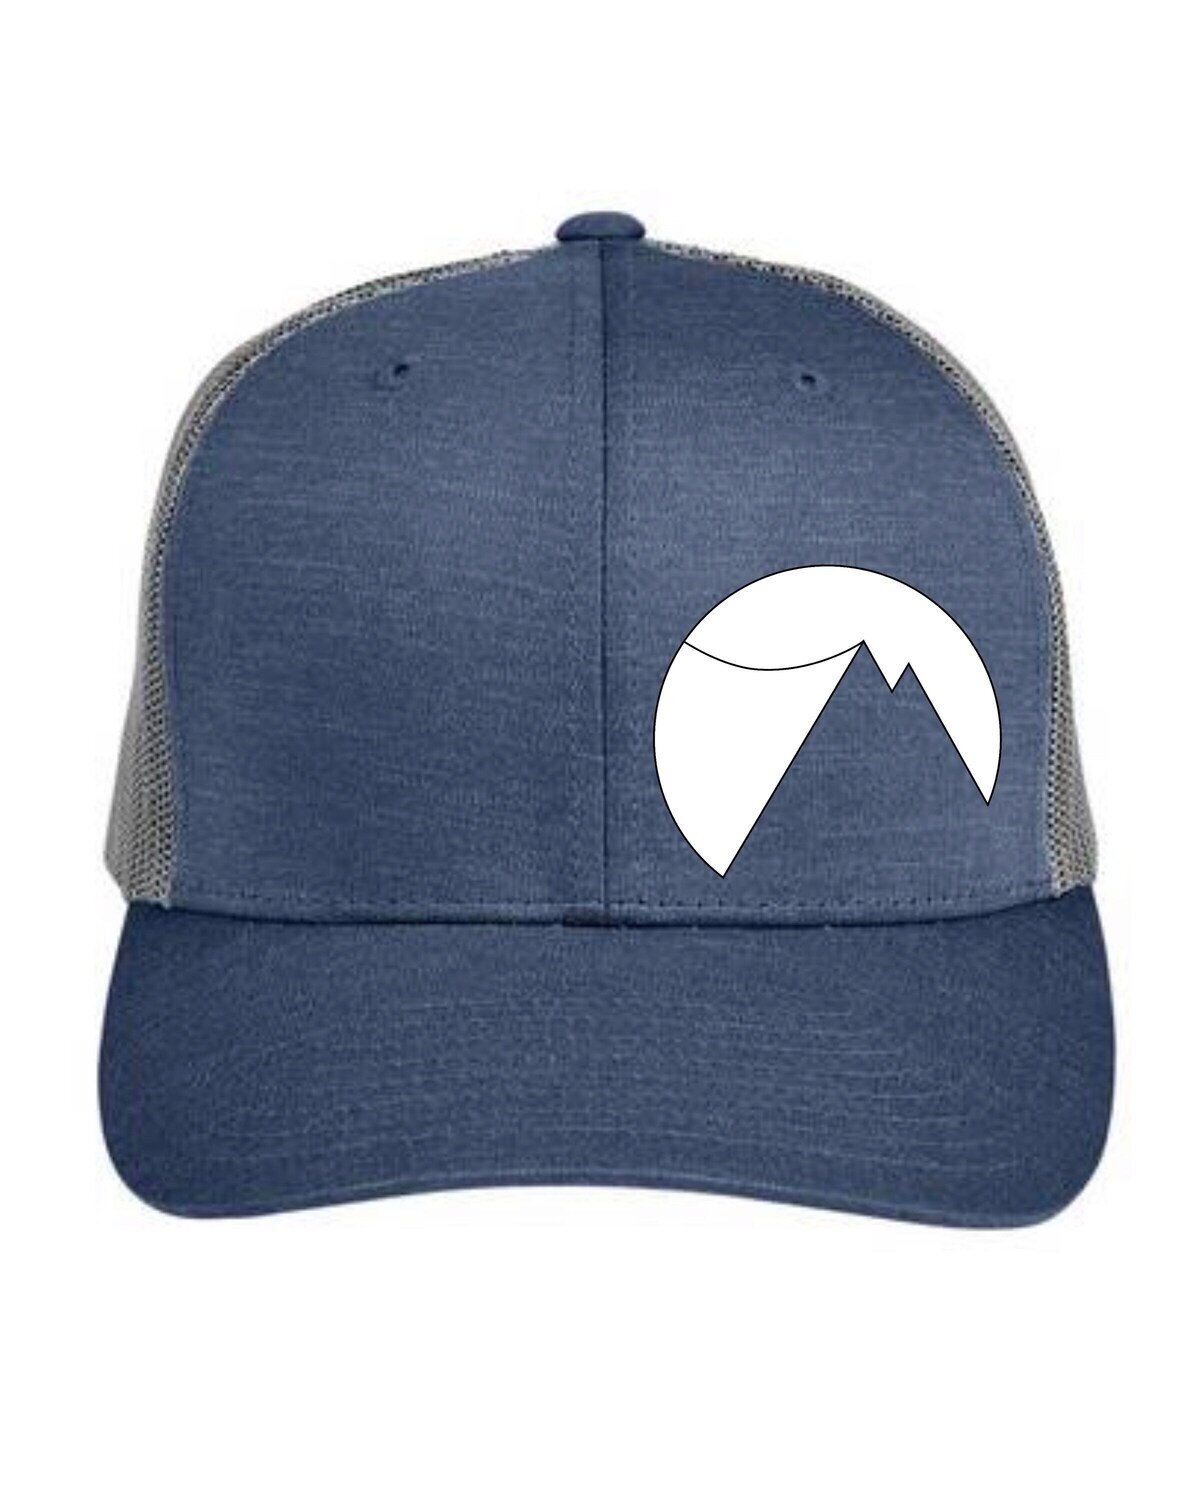 How Not To Highline Official Logo Hat! Ryan Jenks, Super Good Enough!